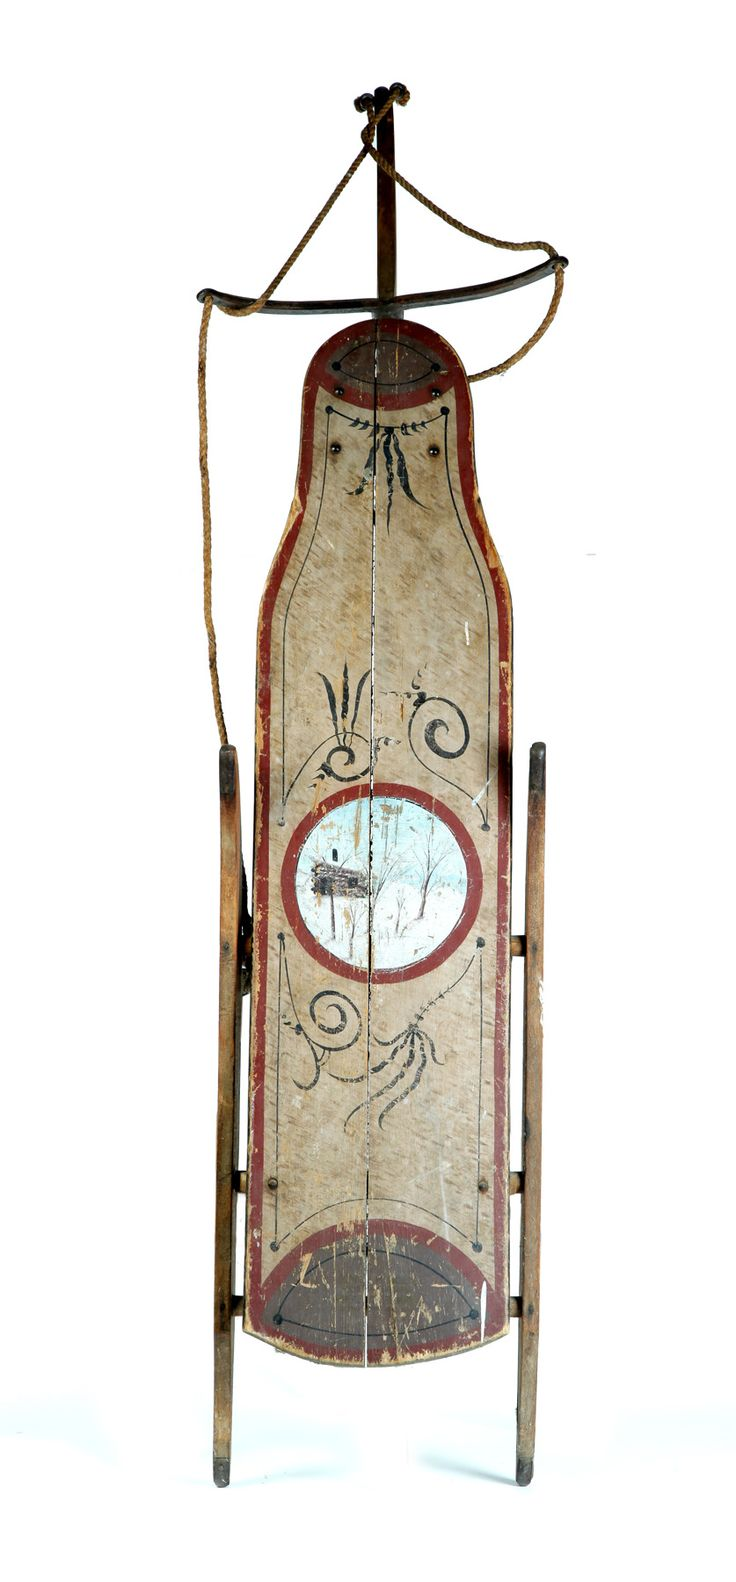 """Garths   Full Details for Lot 474   DECORATED SLED. Attributed to Maine, late 19th-early 20th century, pine and iron. Ex Pam Boynton (Massachusetts). Pivoting runners and original decoration, including a central winter landscape. 68""""l. Estimate $ 300-600"""